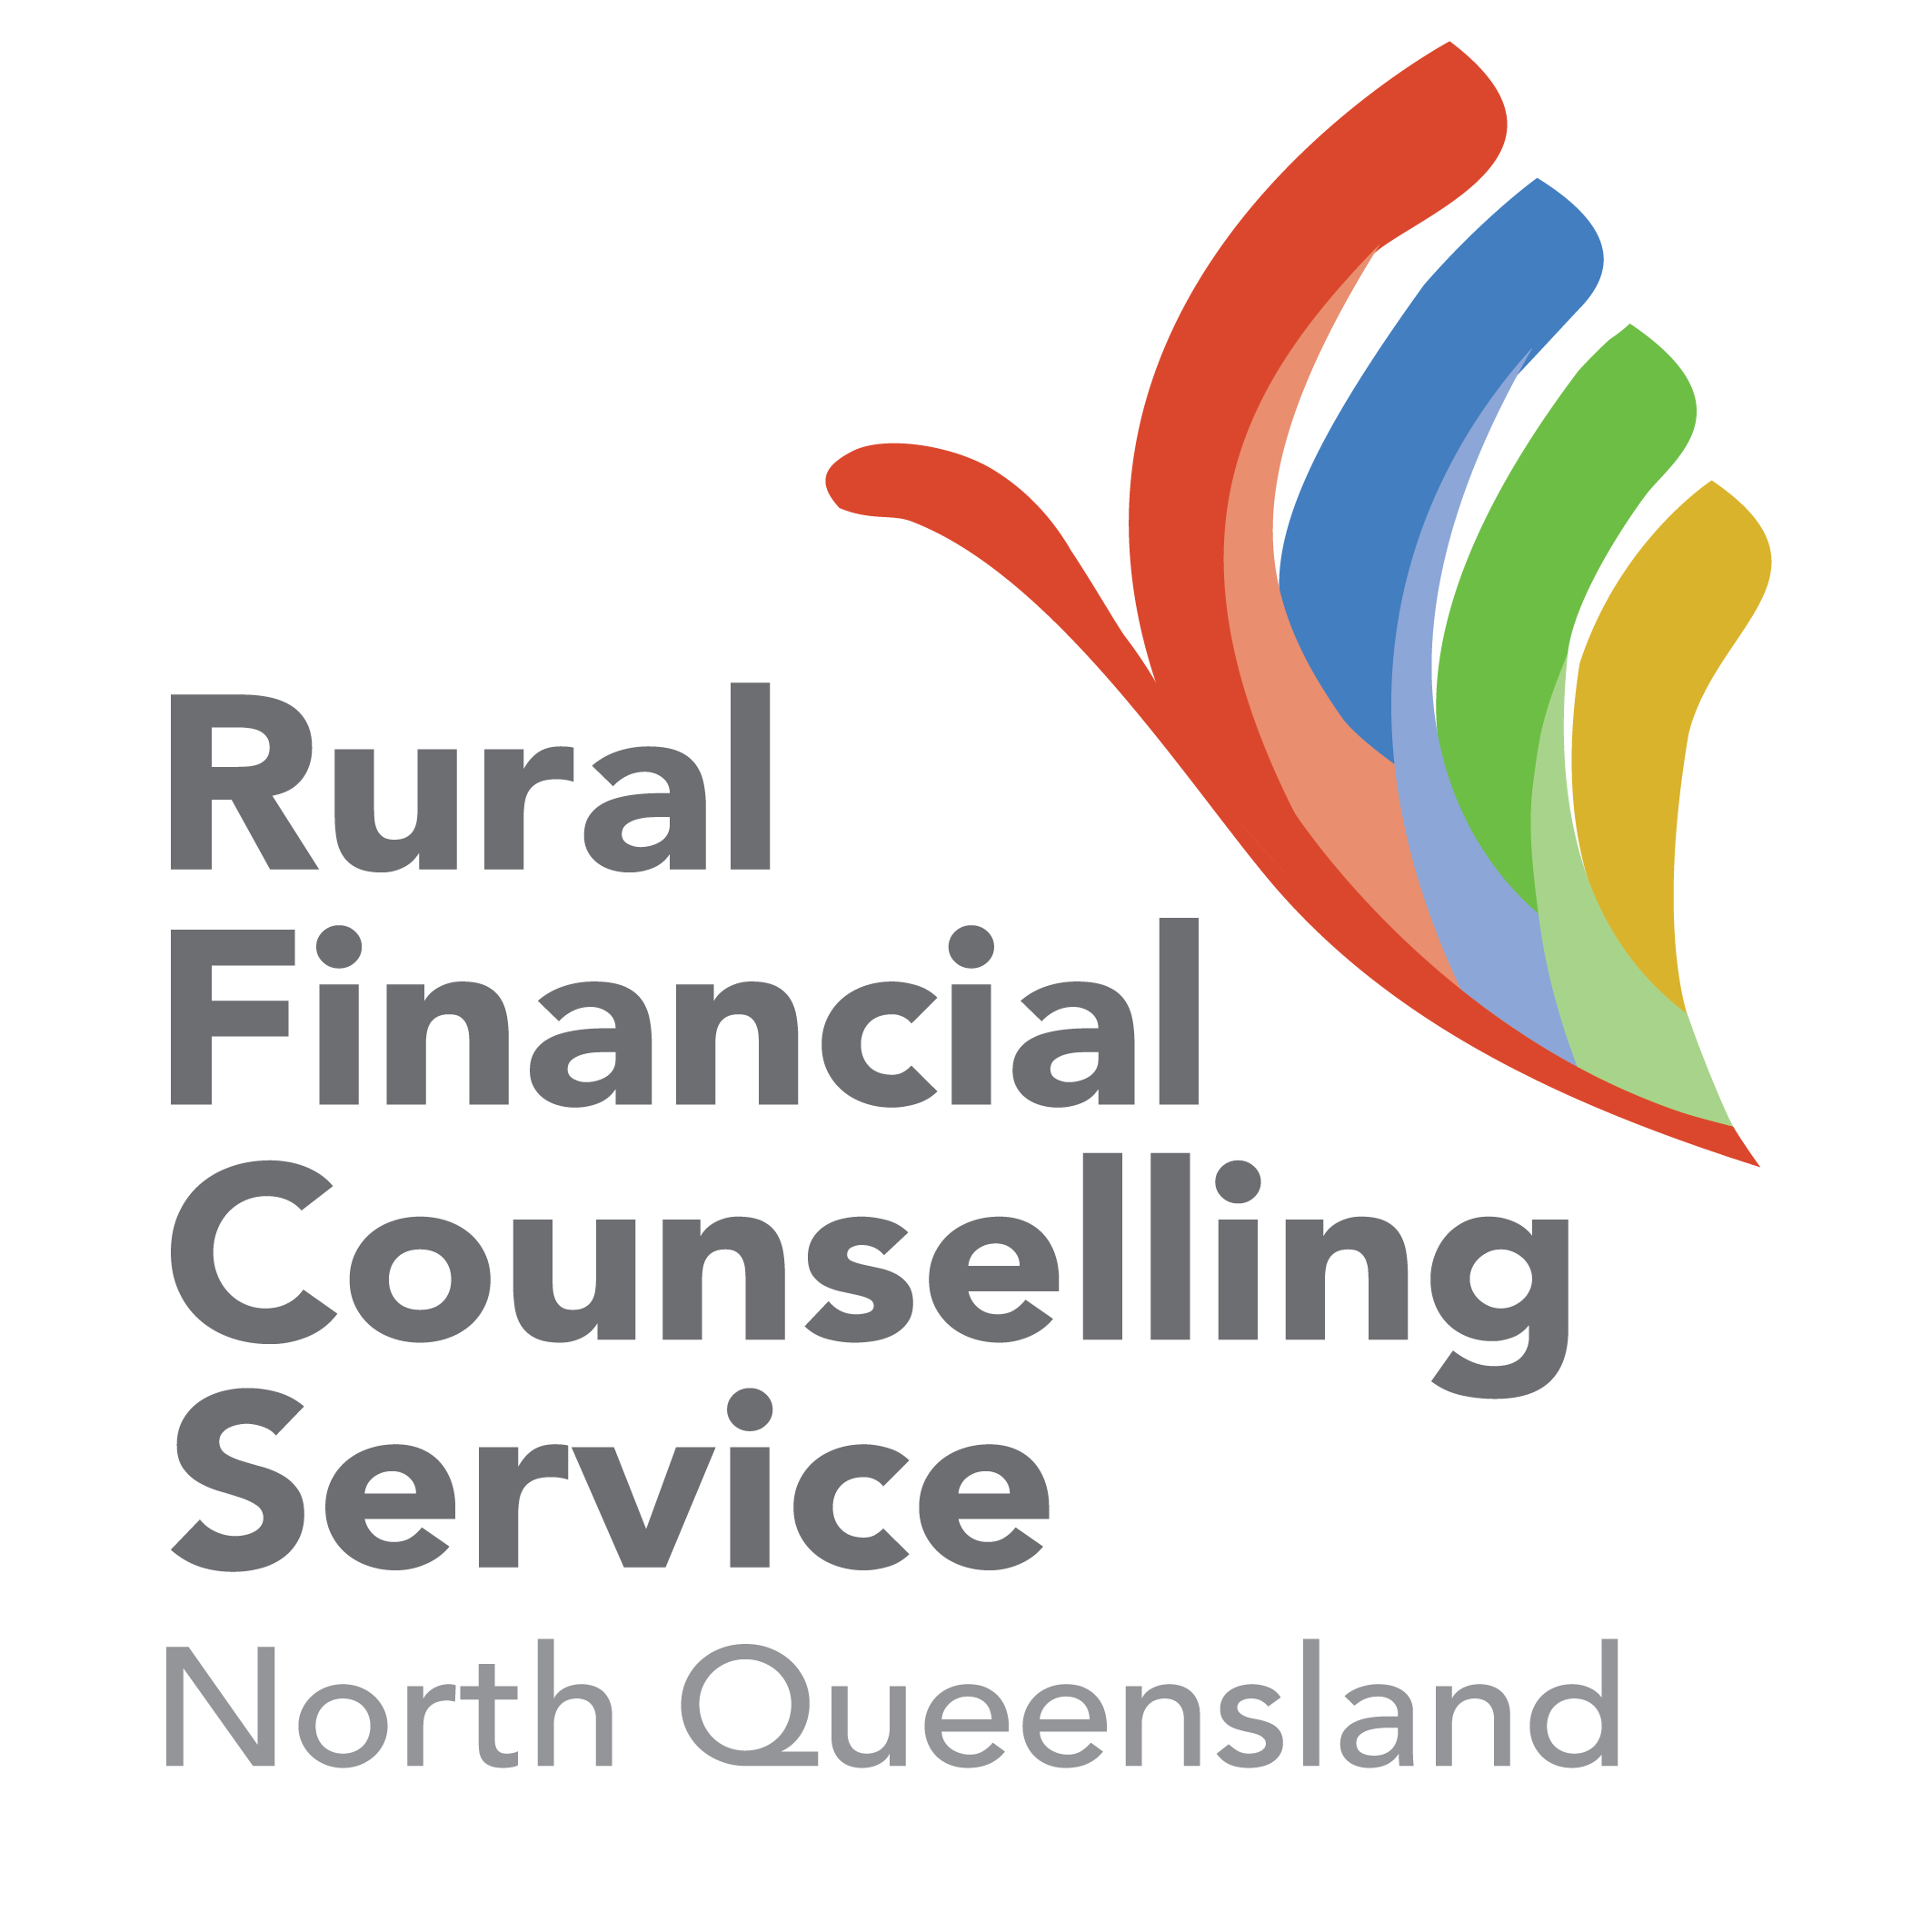 Rural Financial Counselling Service North Queensland